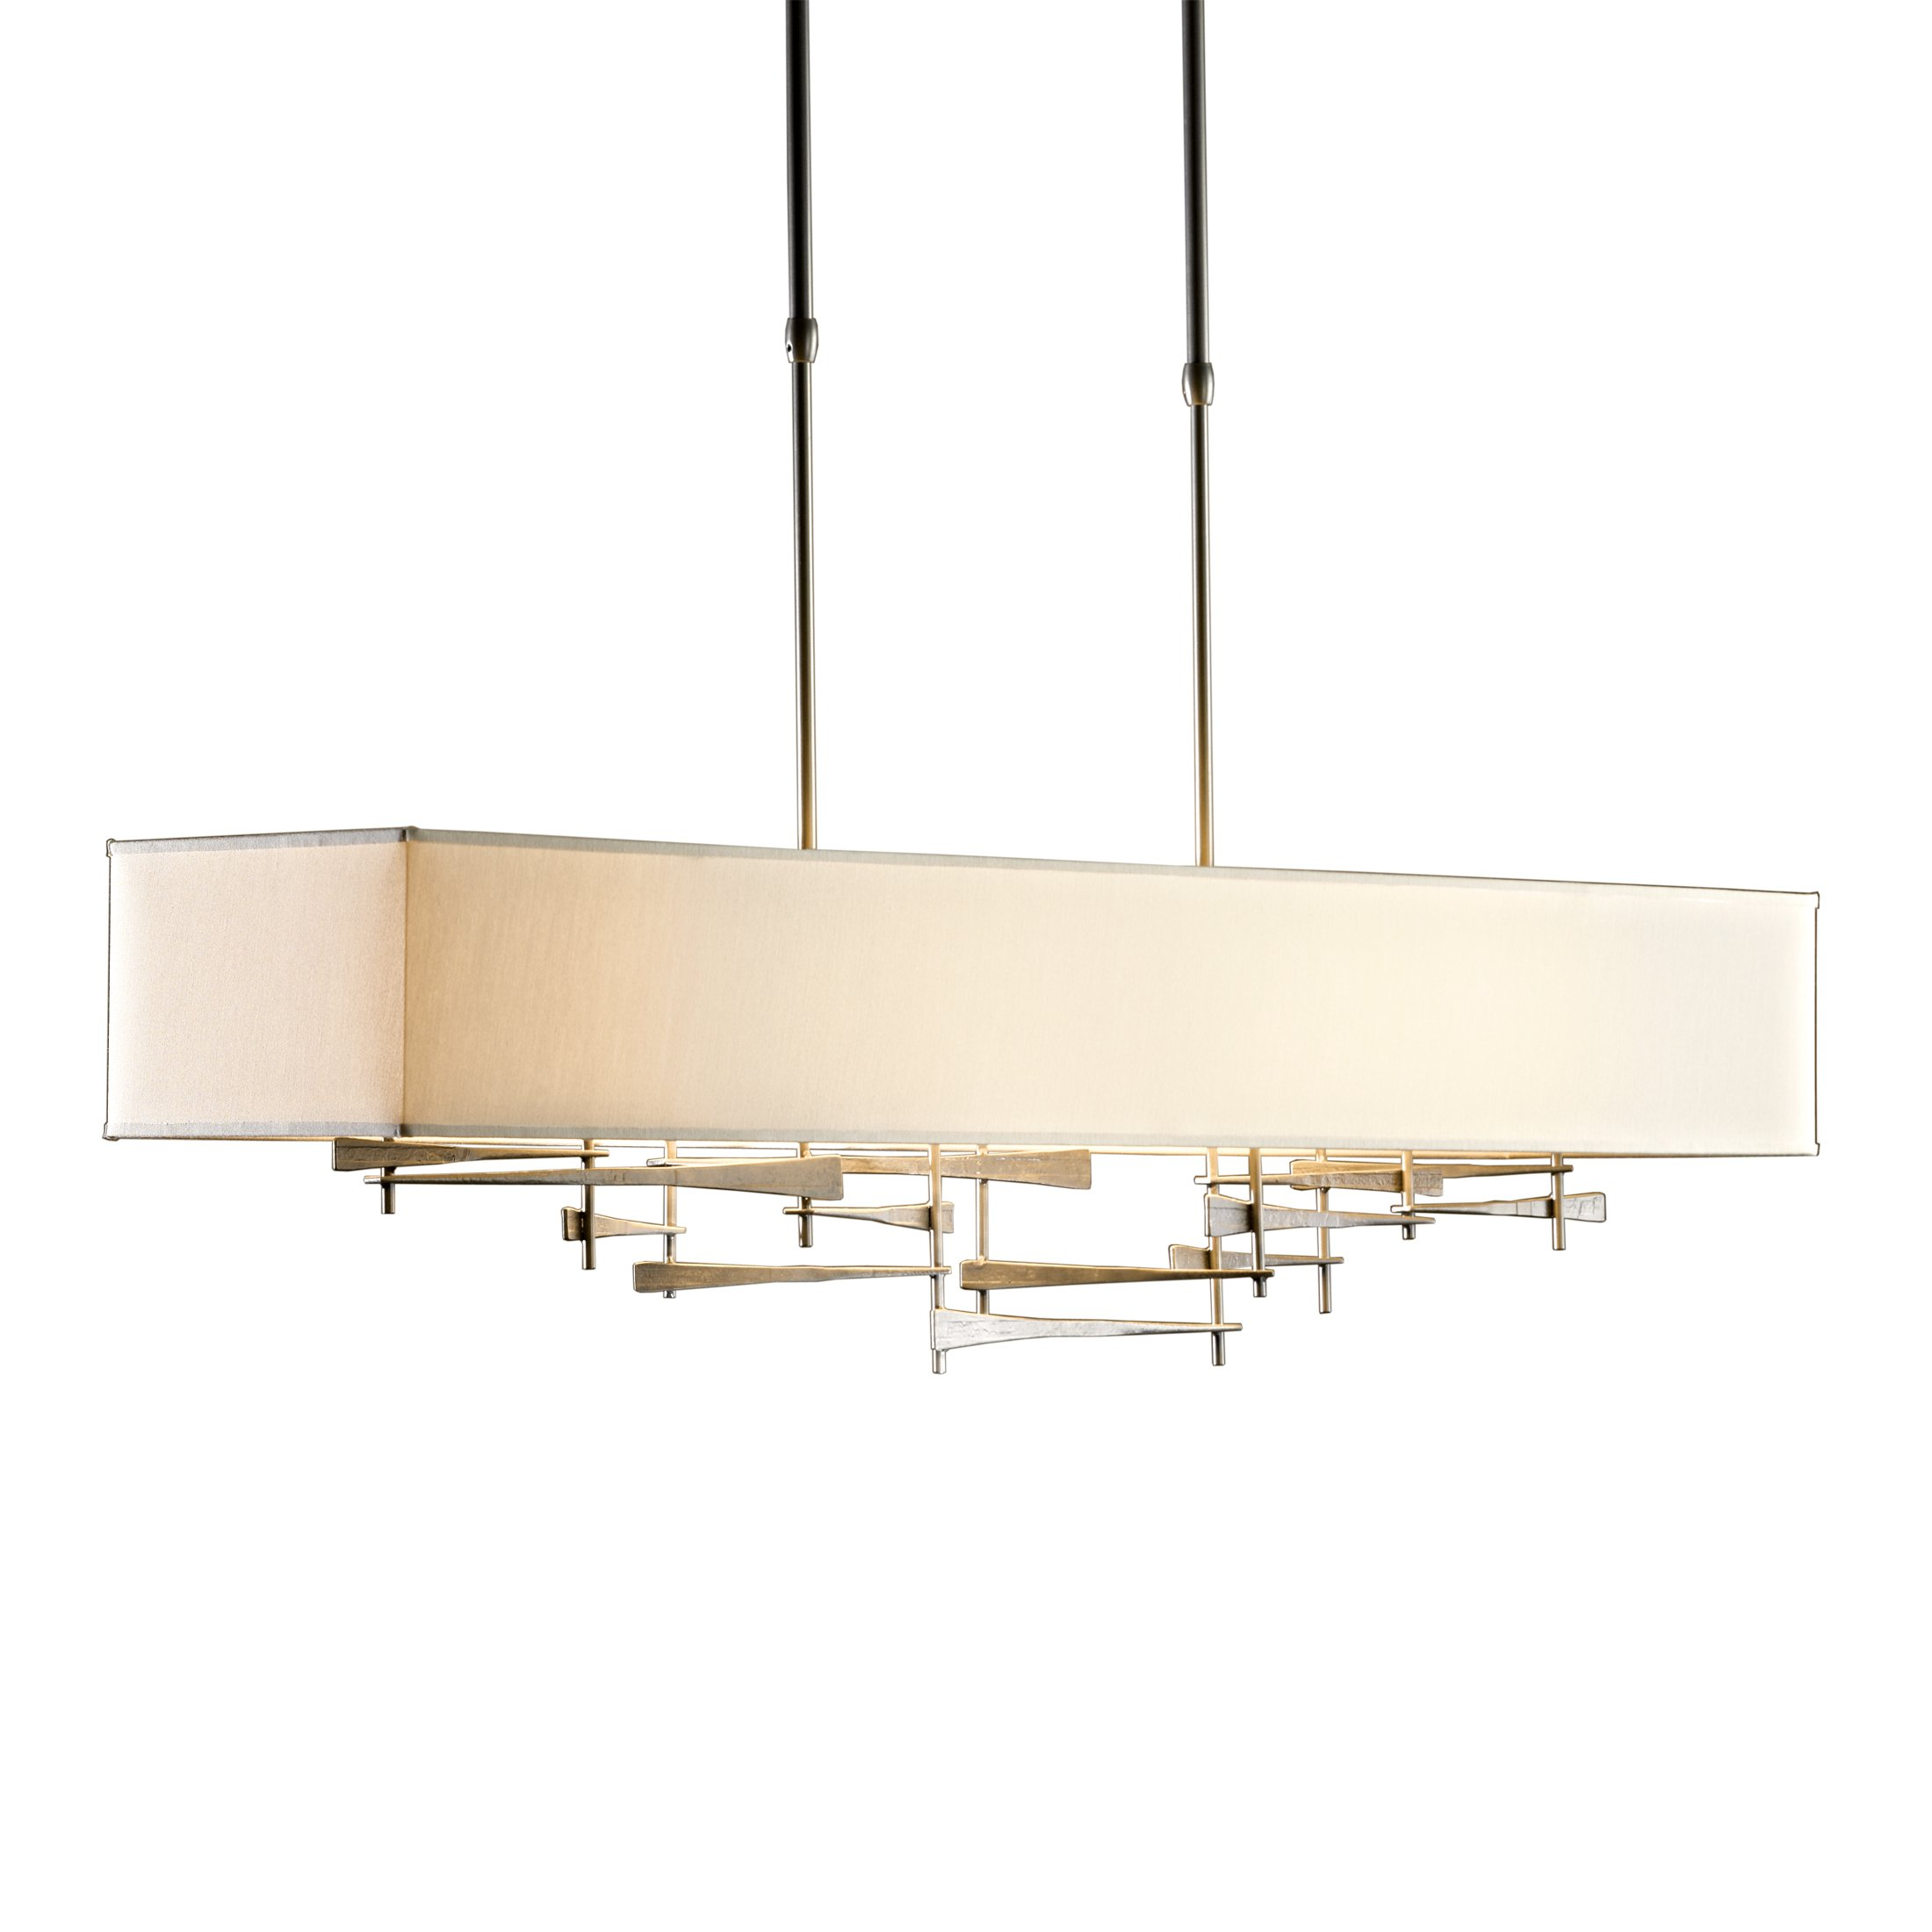 Hubbardton Forge 137670-1050 Cavaletti Pendant, Burnished Steel/Doeskin Suede